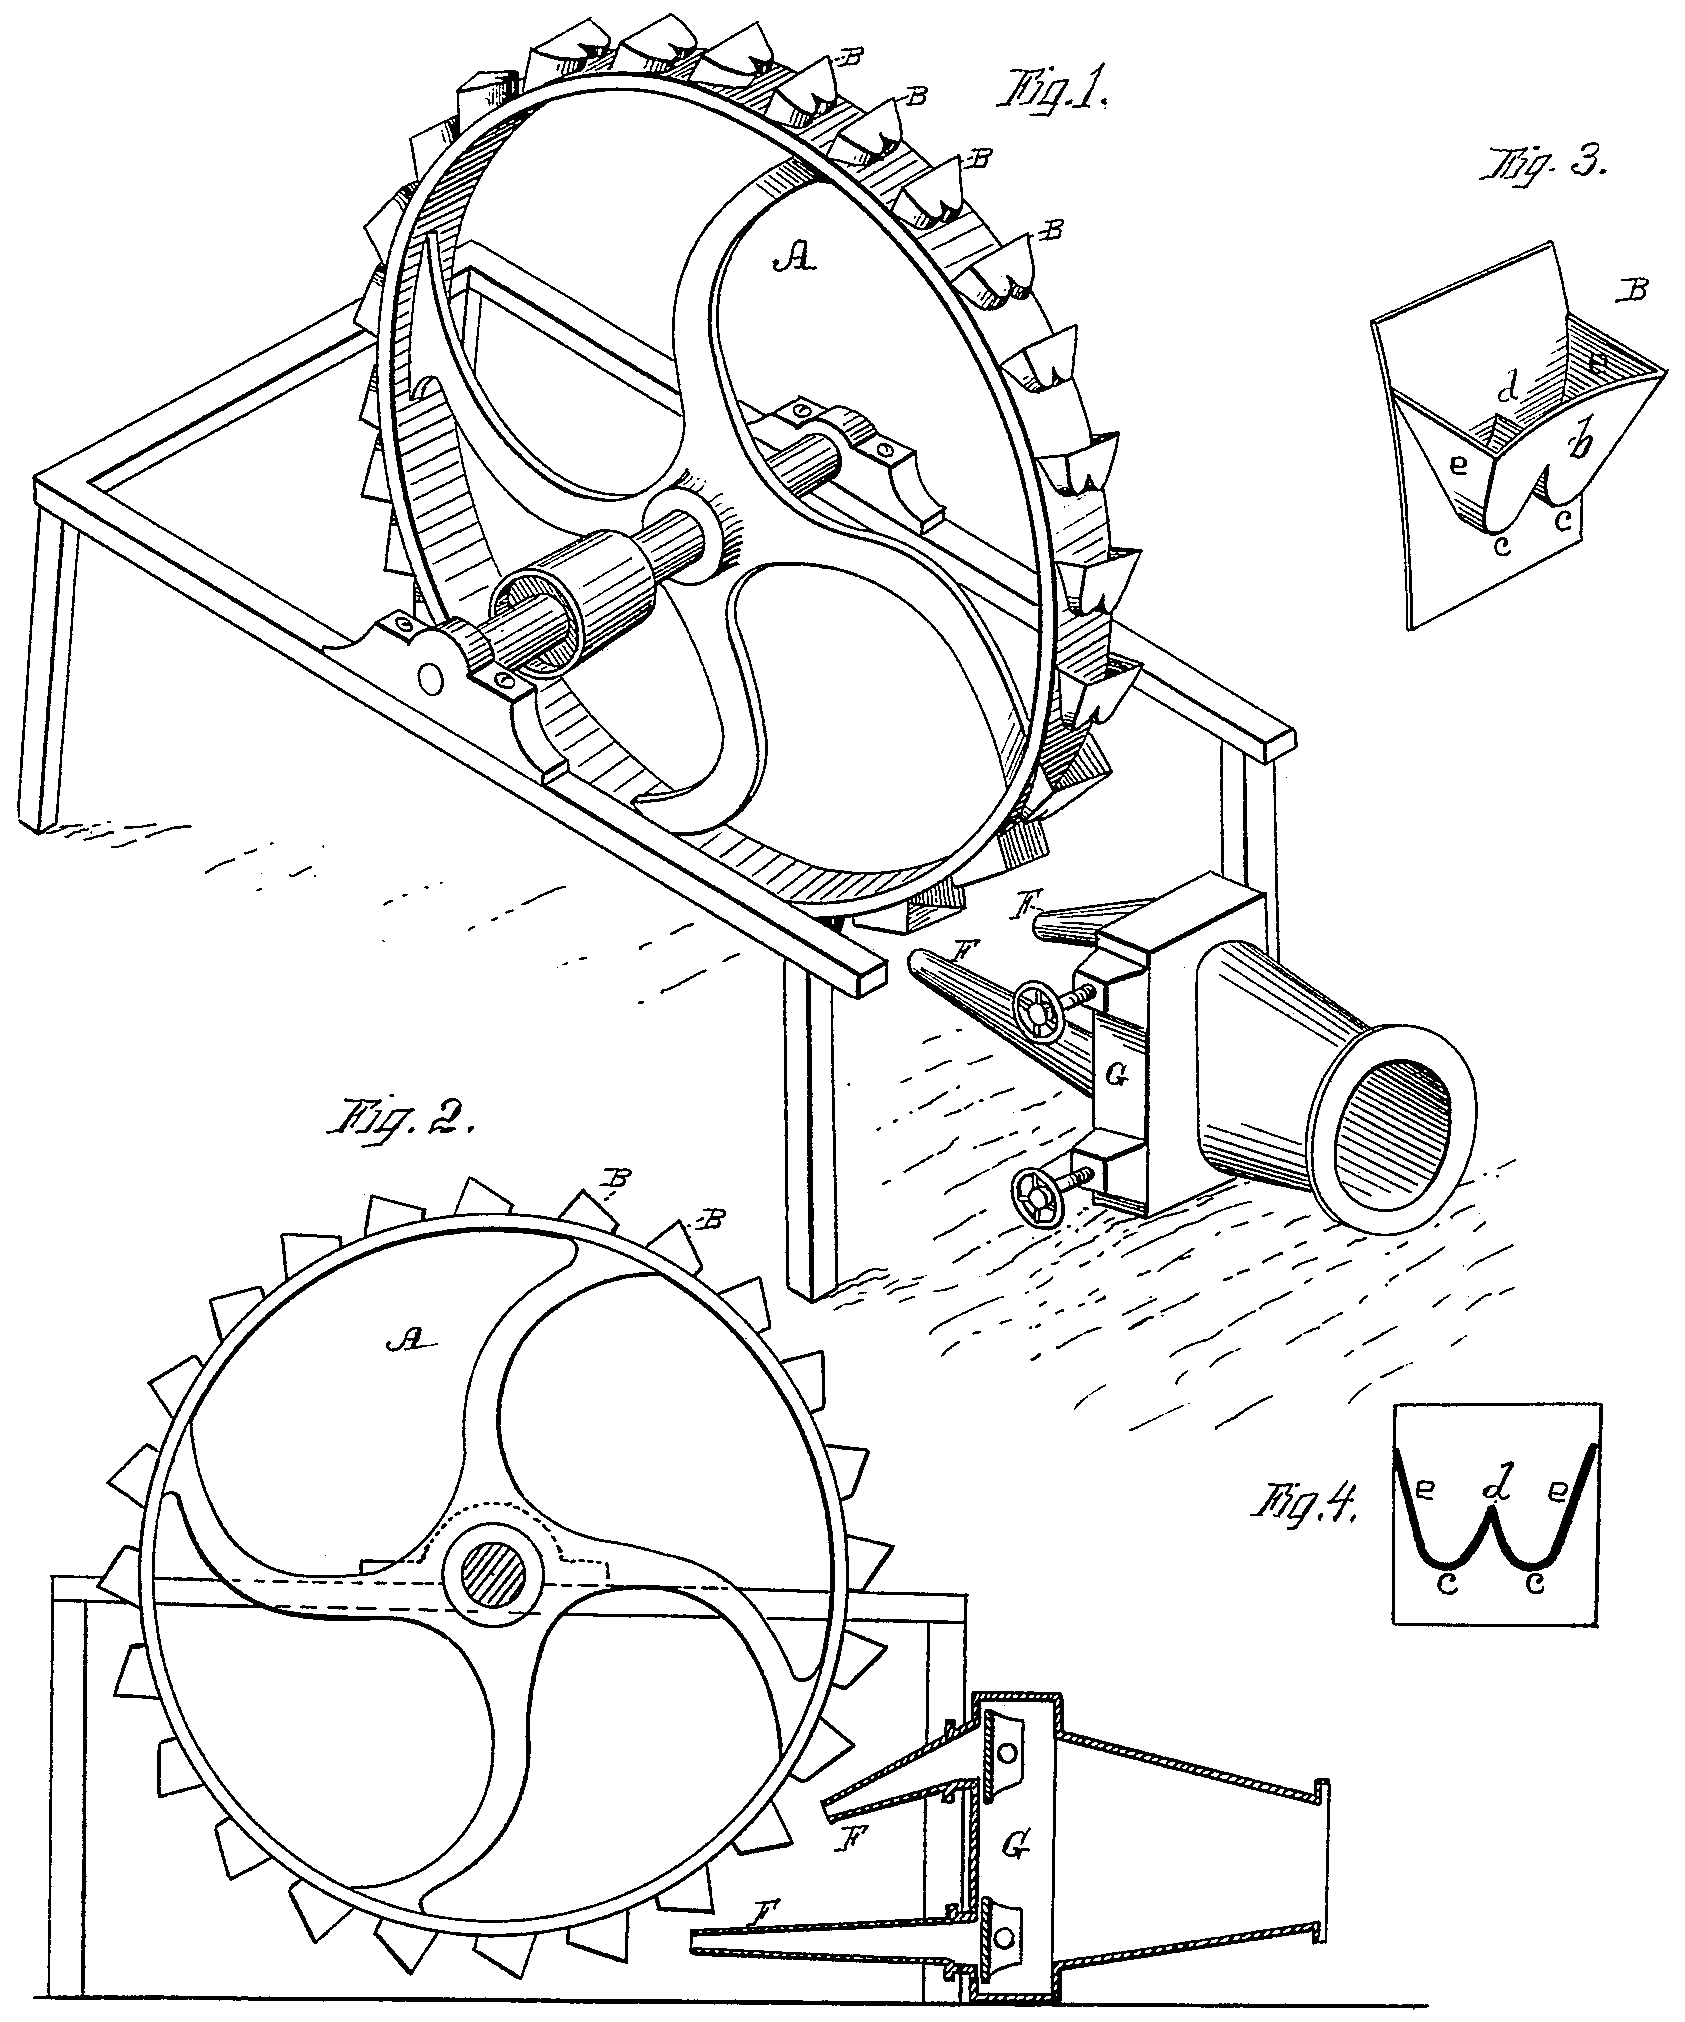 figure 4: pelton turbine patent from 1880 (source: wikipedia)